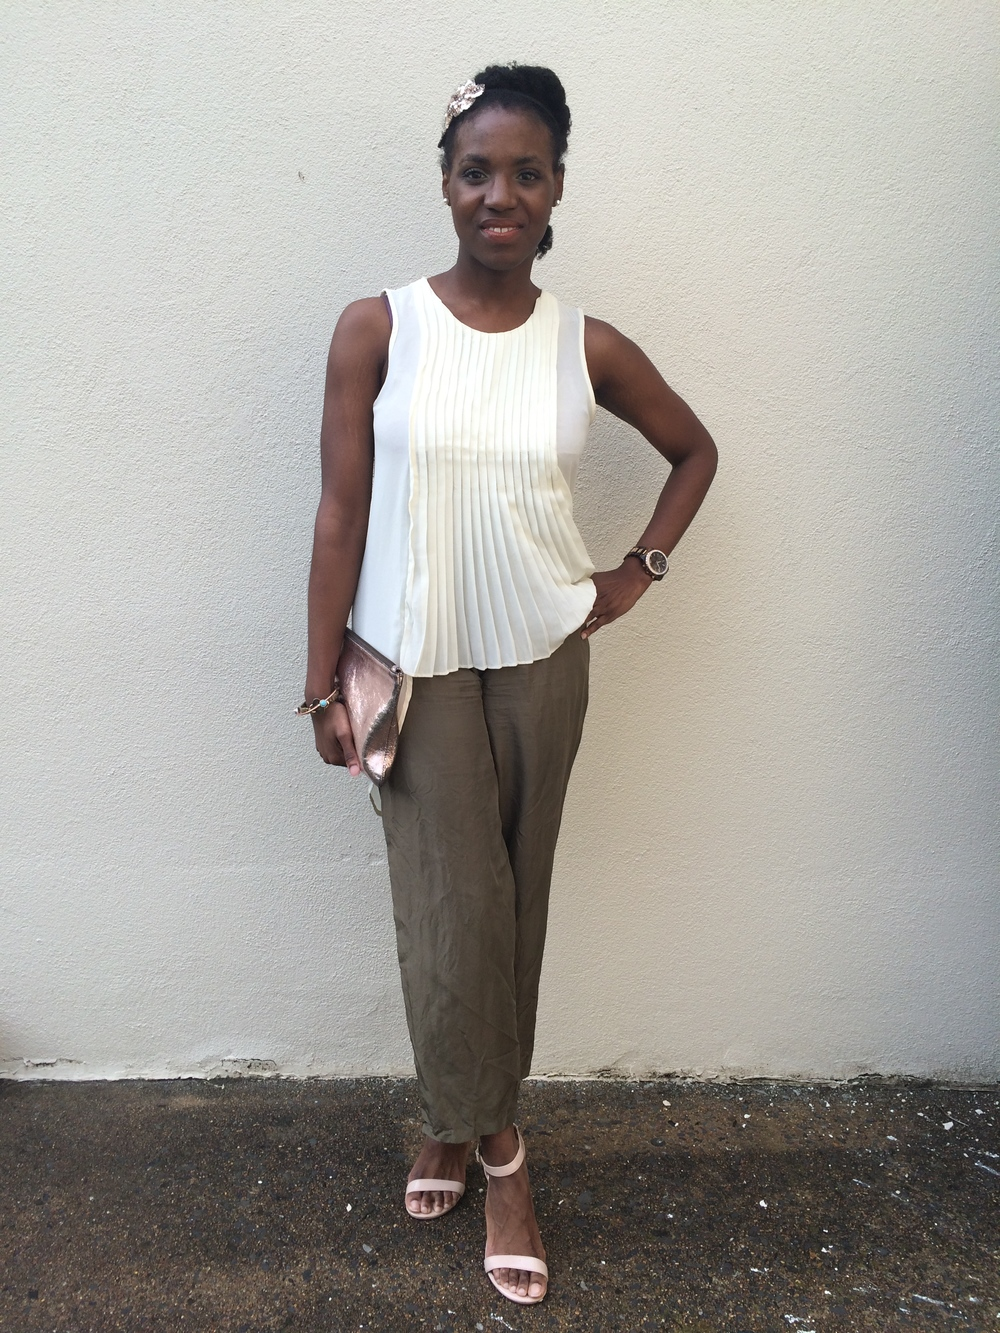 outfit deets- pants: vintage; shirt: Buffalo Exchange; shoes: Steve Madden c/o Macy's; clutch: Marc Jacobs for Target